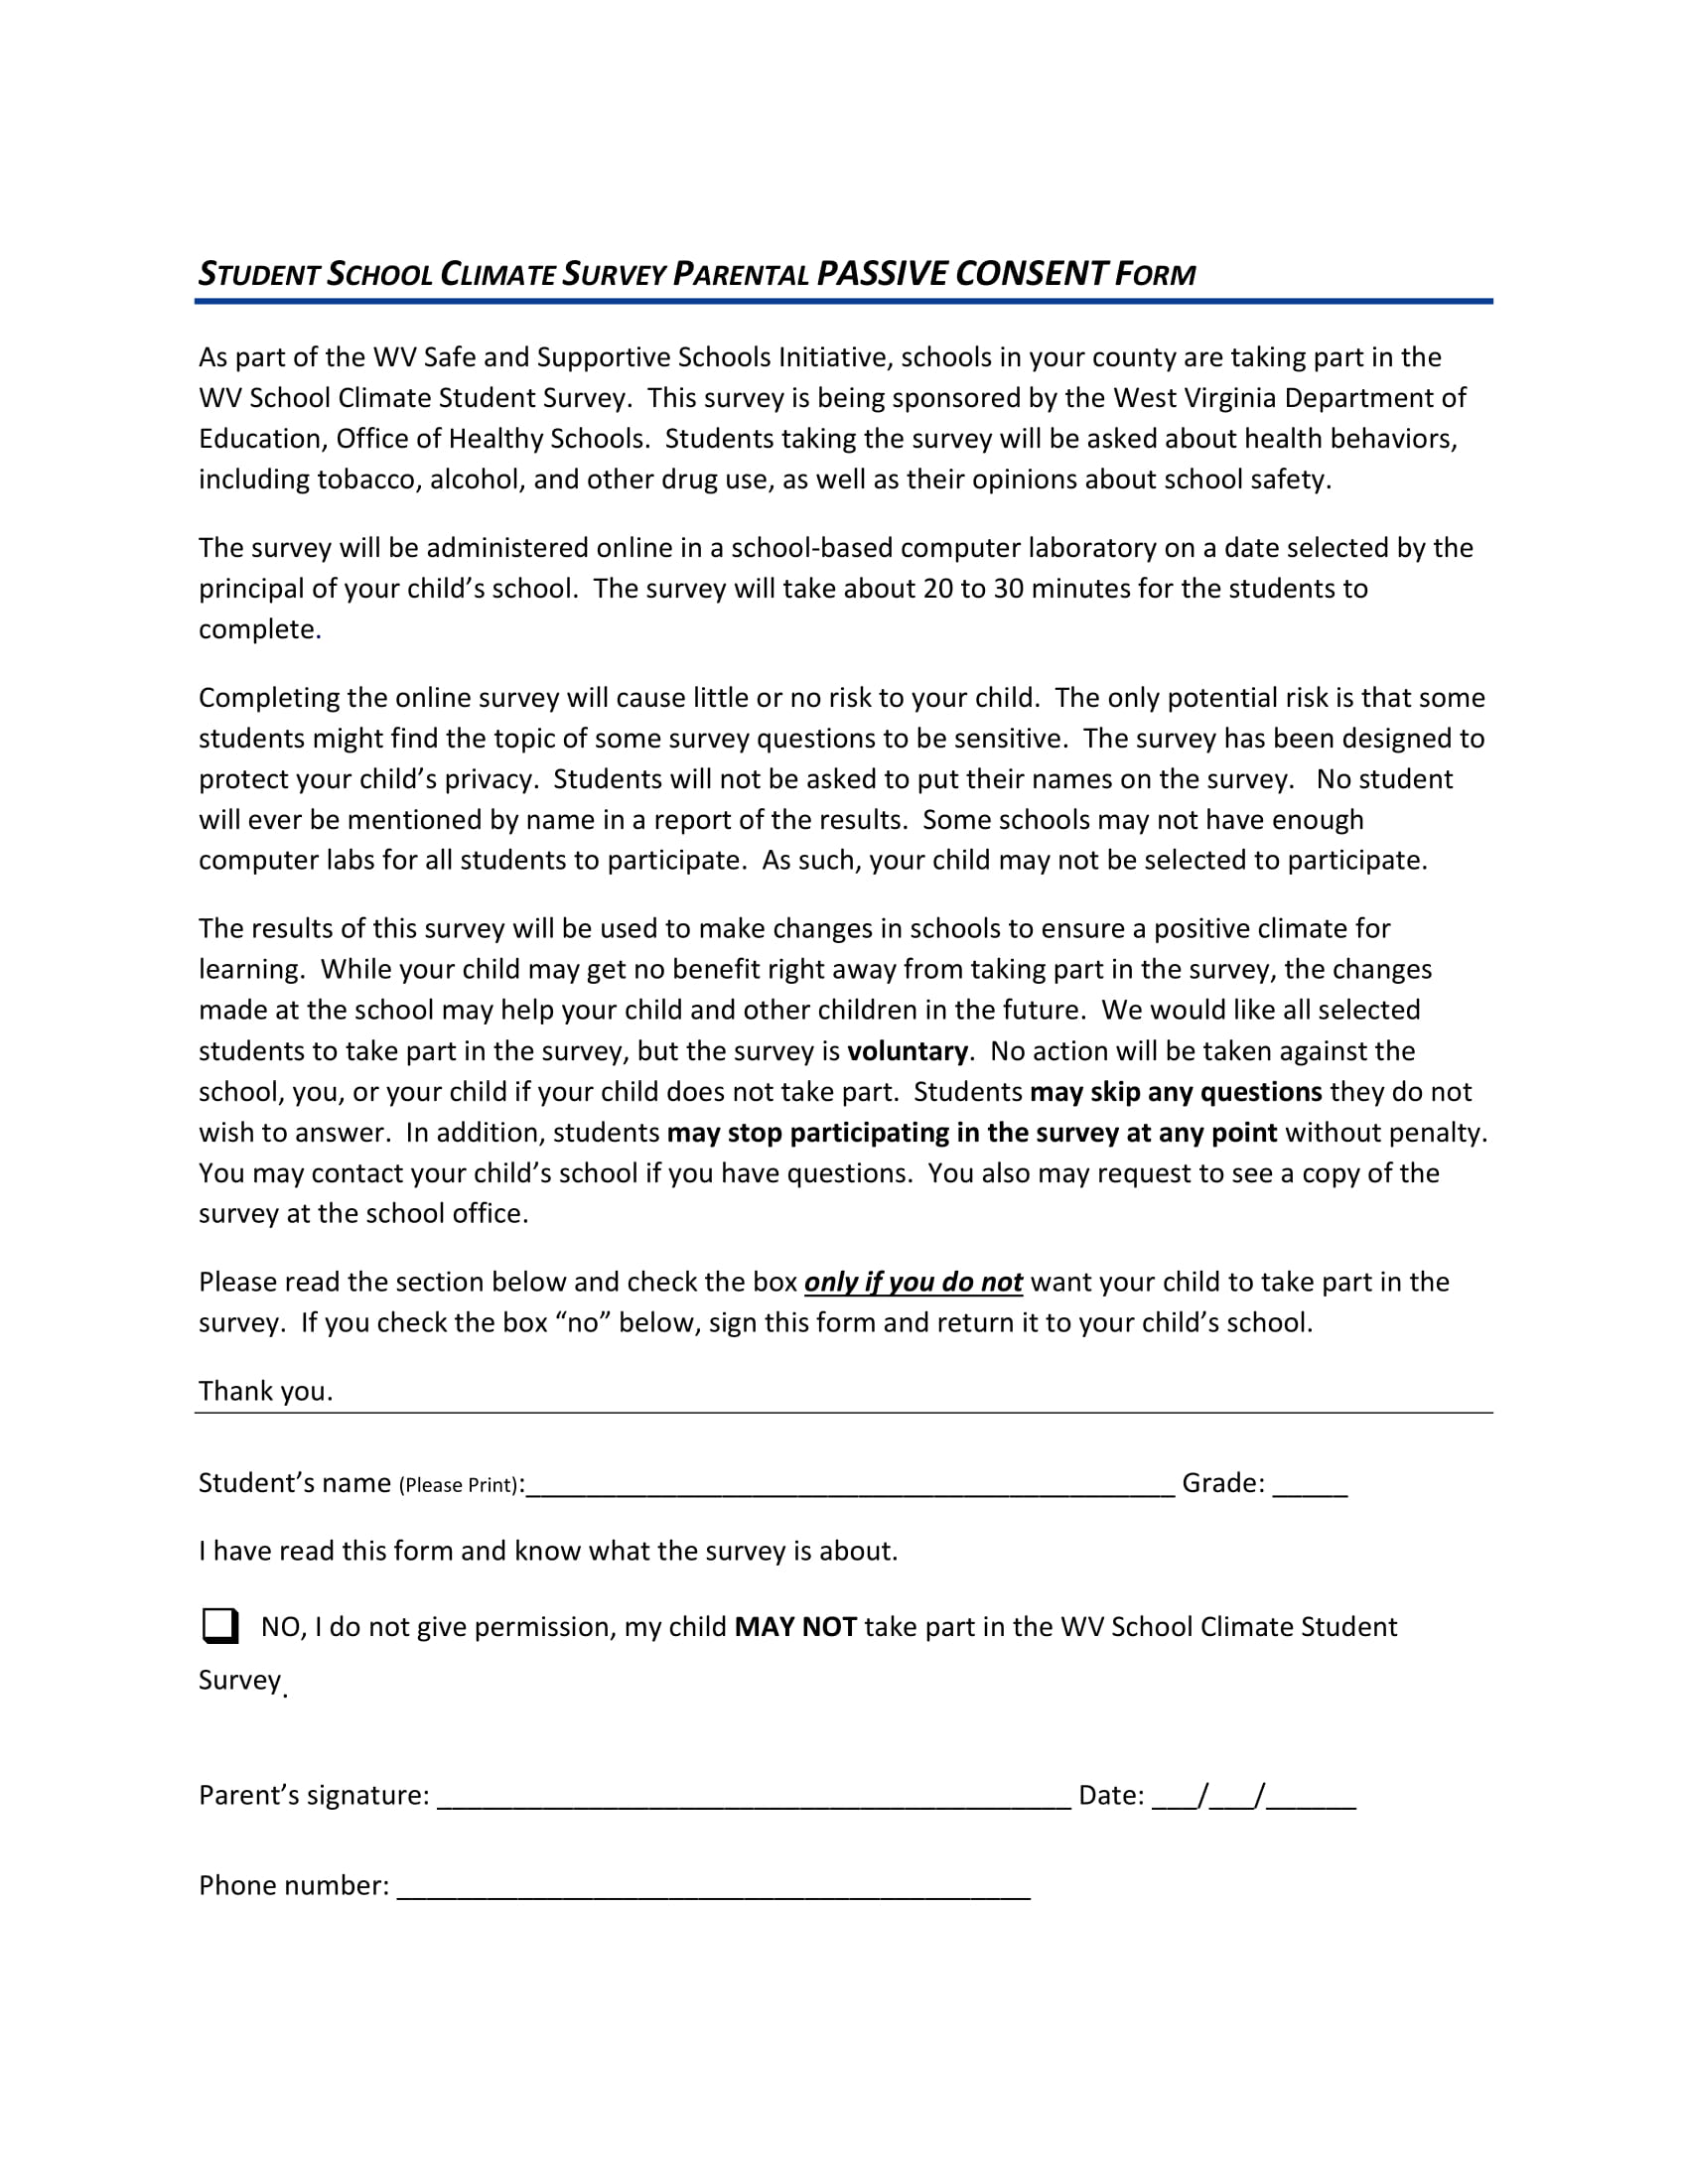 passive consent form sample 1